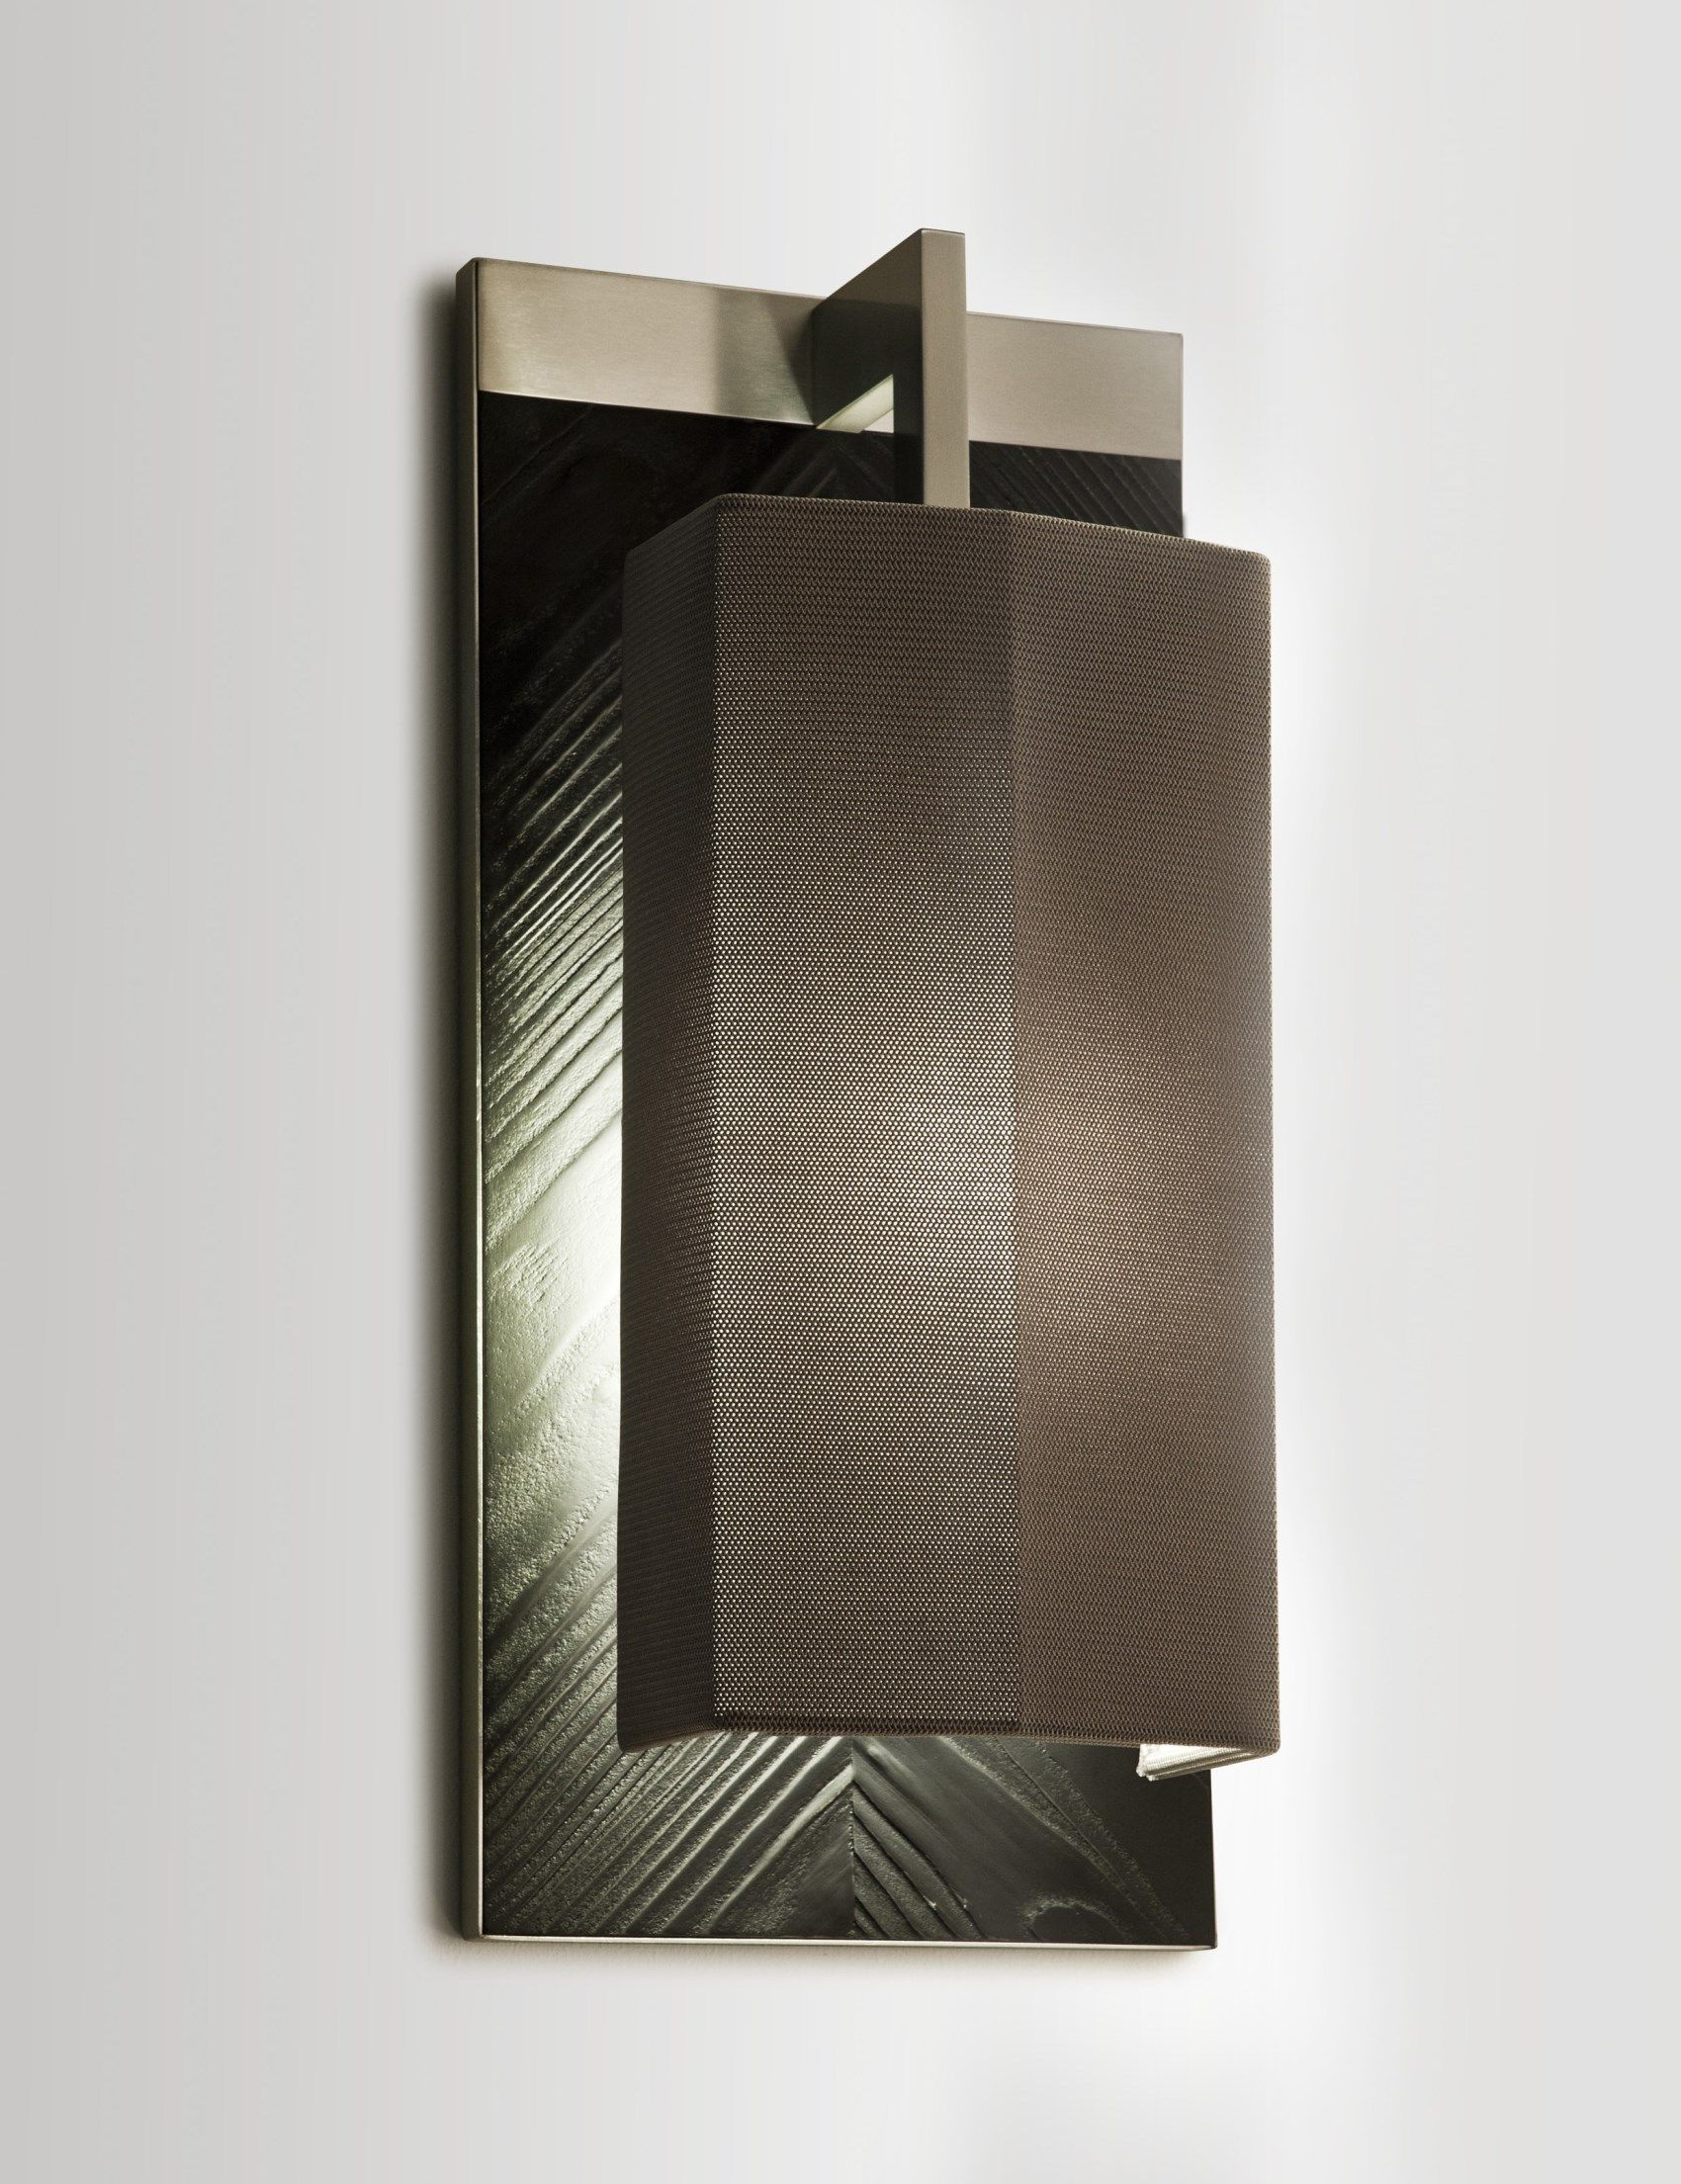 26 Interior Design Ideas With Wall Sconce: Masculine Wall Light By Tristan Auer. We'd Love To See How